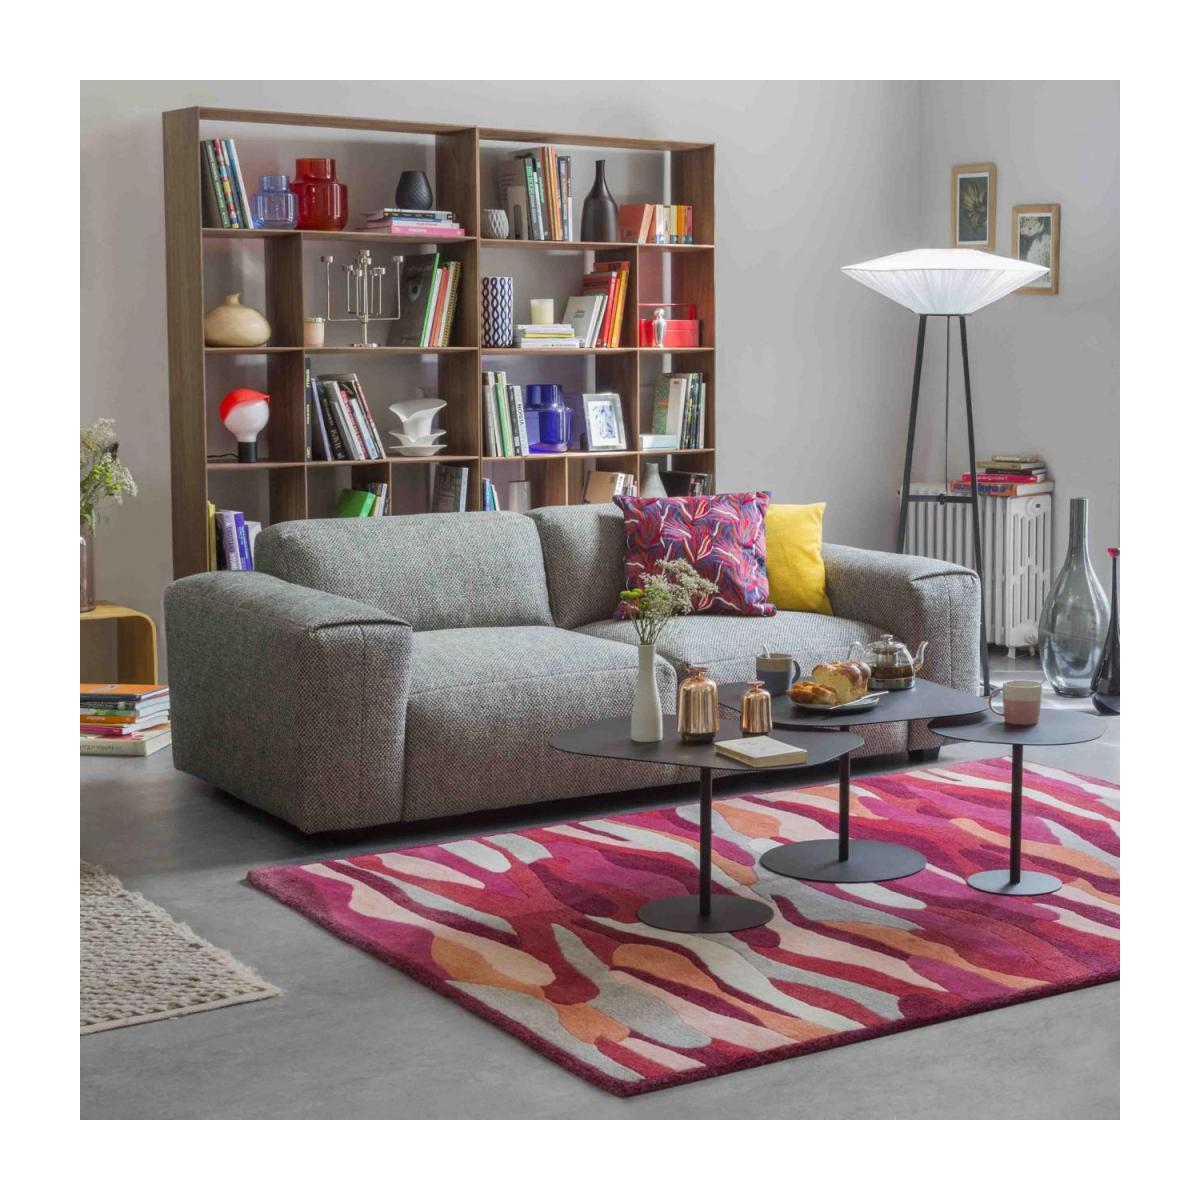 4-seter sofa, sort n°13